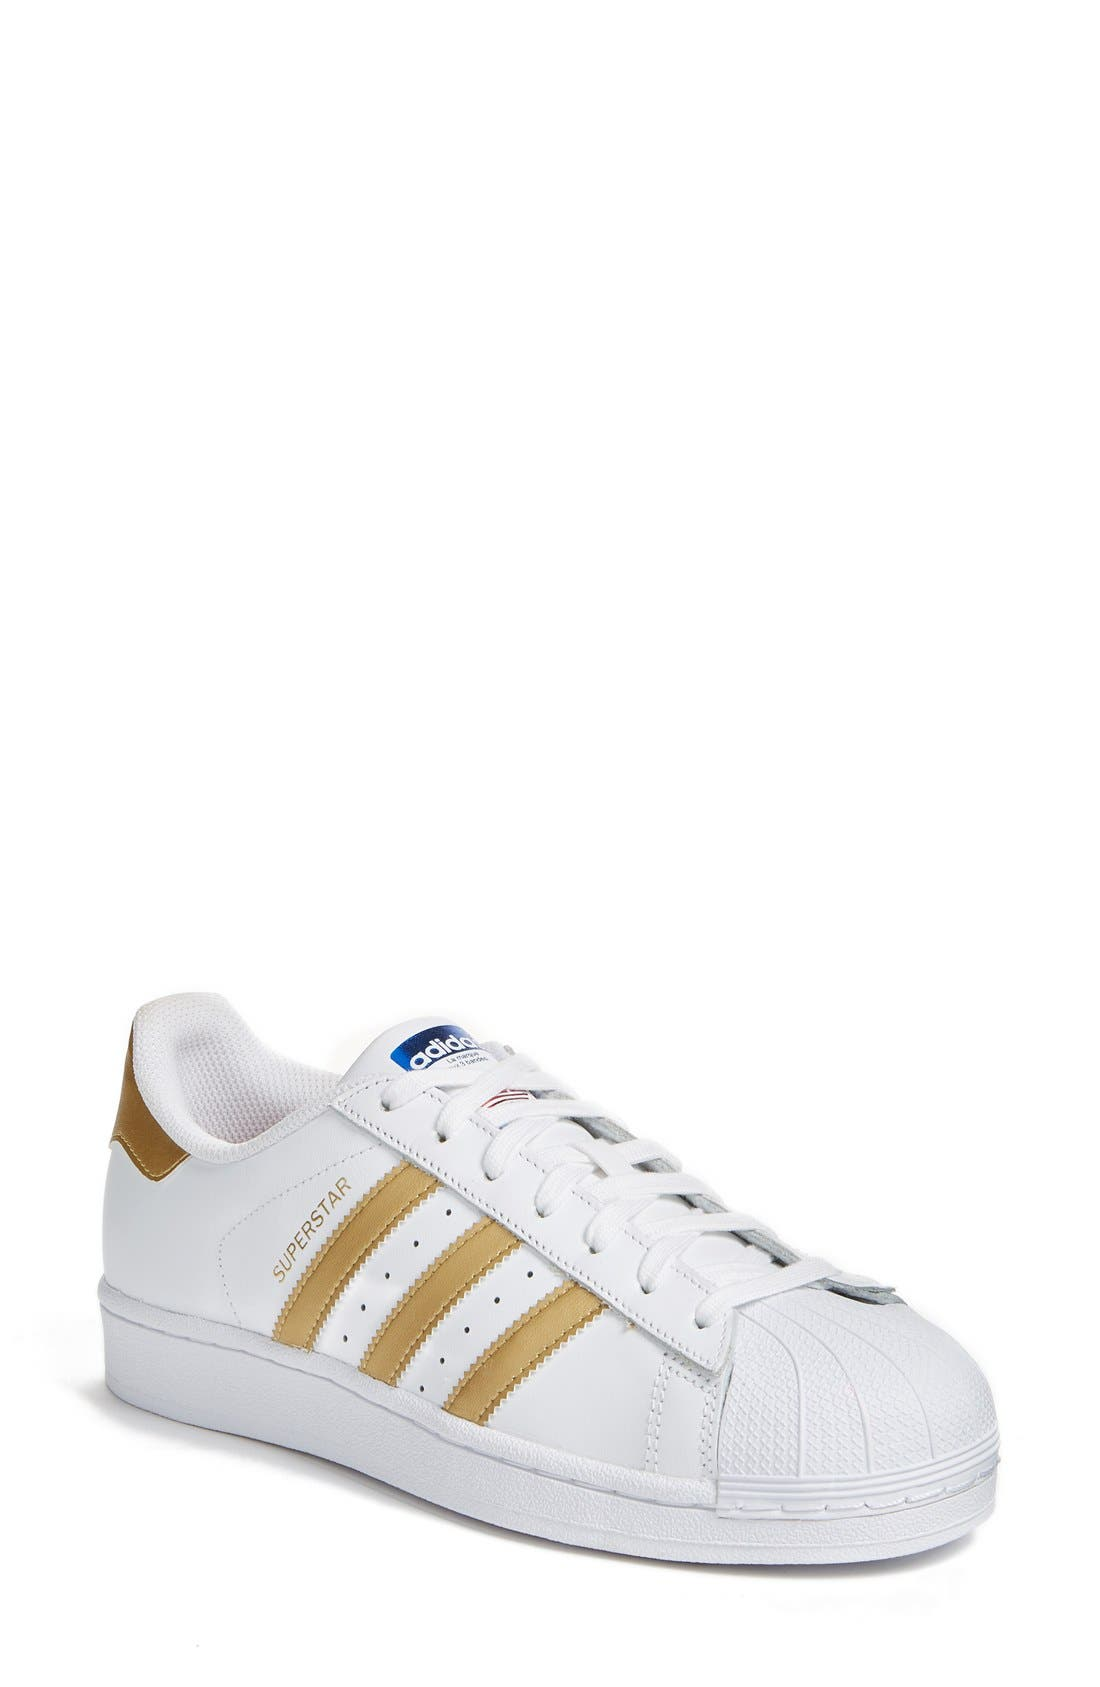 Main Image - adidas Superstar Sneaker